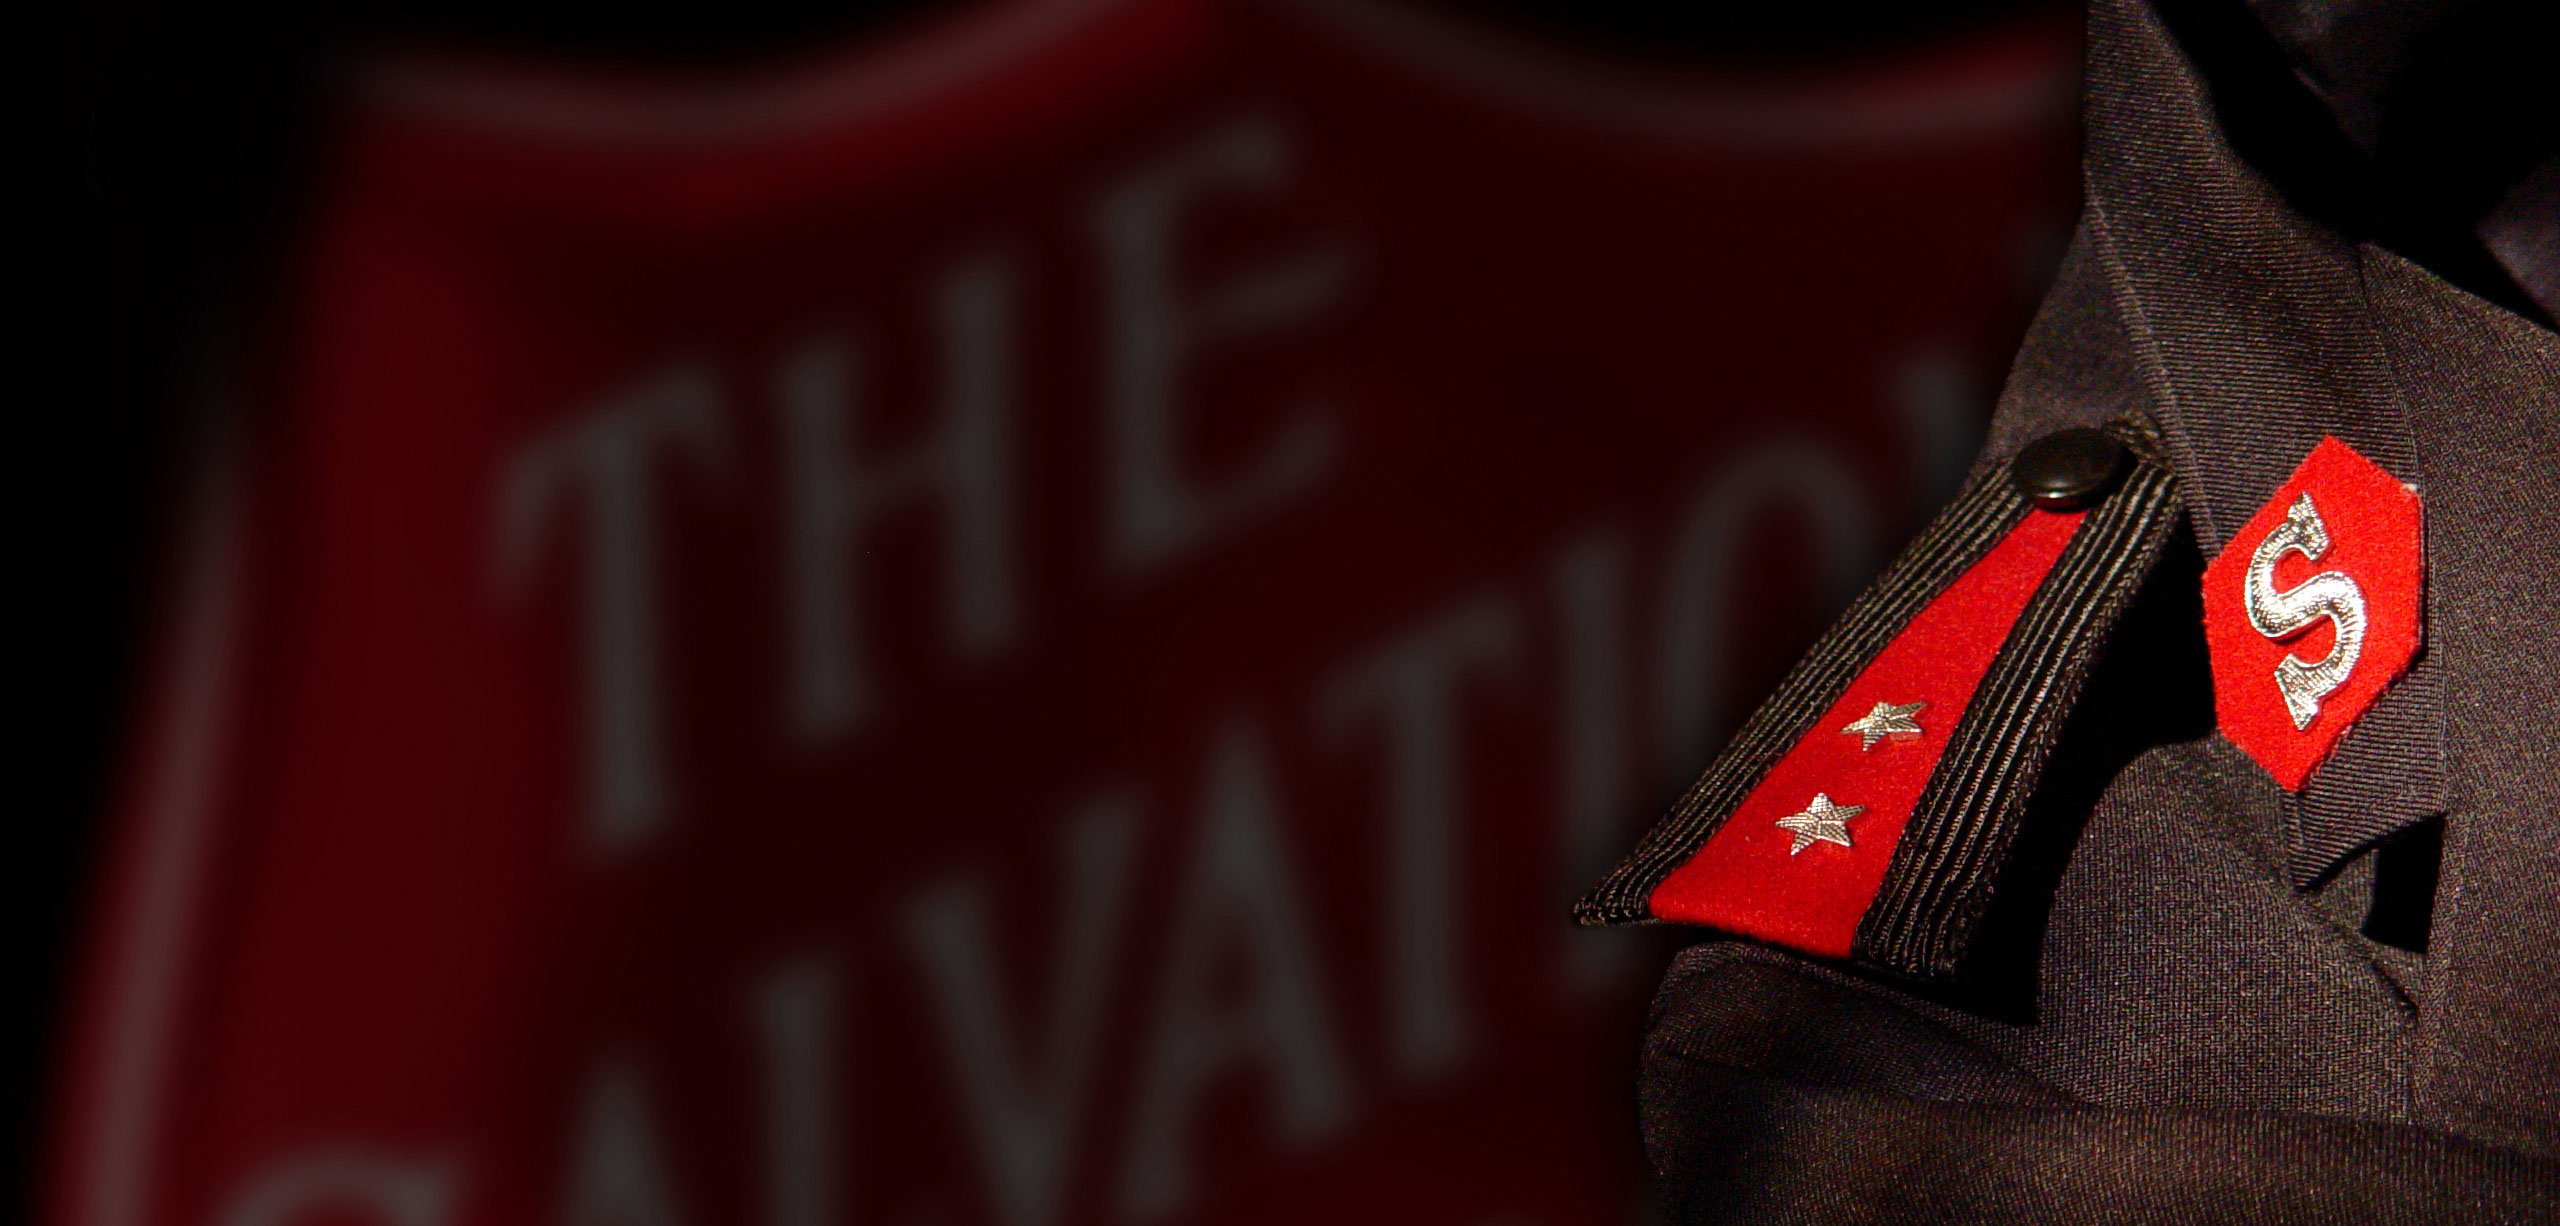 The salvation army soldier stars on dress coat